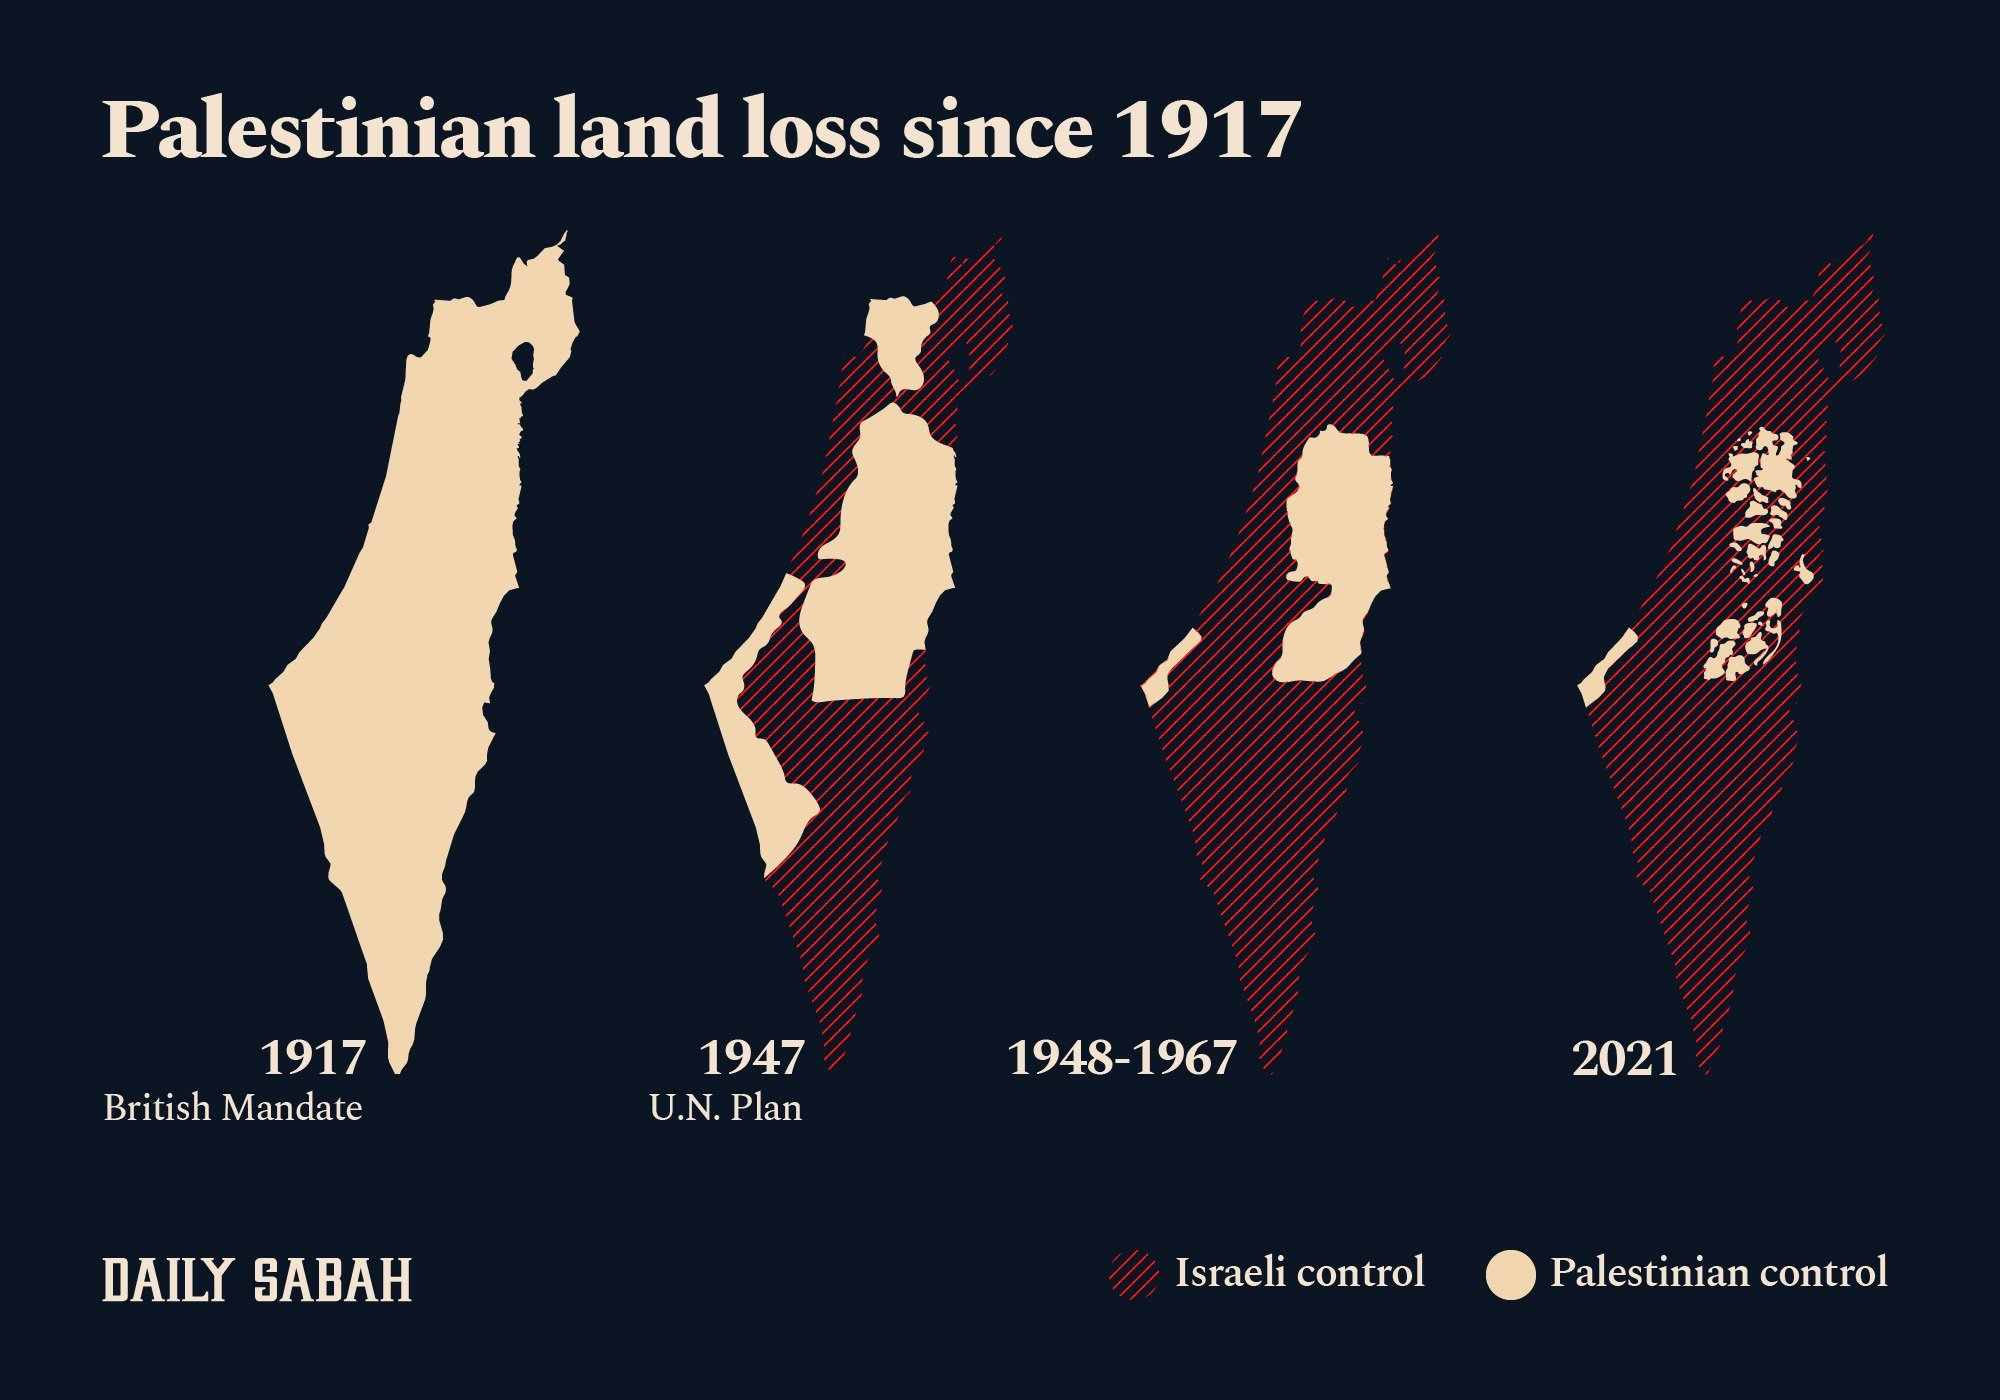 Infographic by Daily Sabah